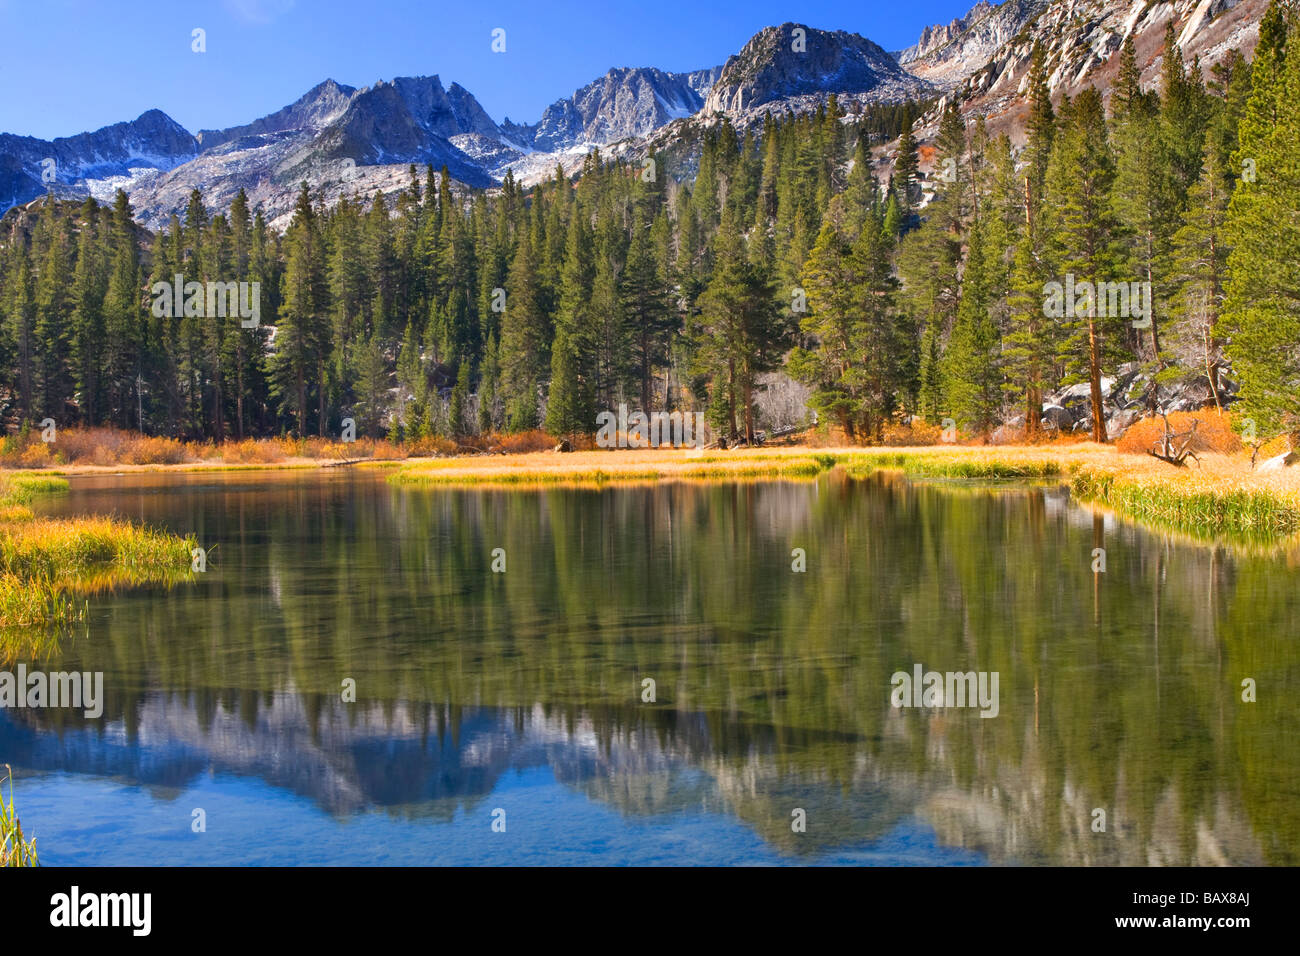 Lodgepole Pine Trees line a man-made lake in the Sierra Mountains, California. - Stock Image